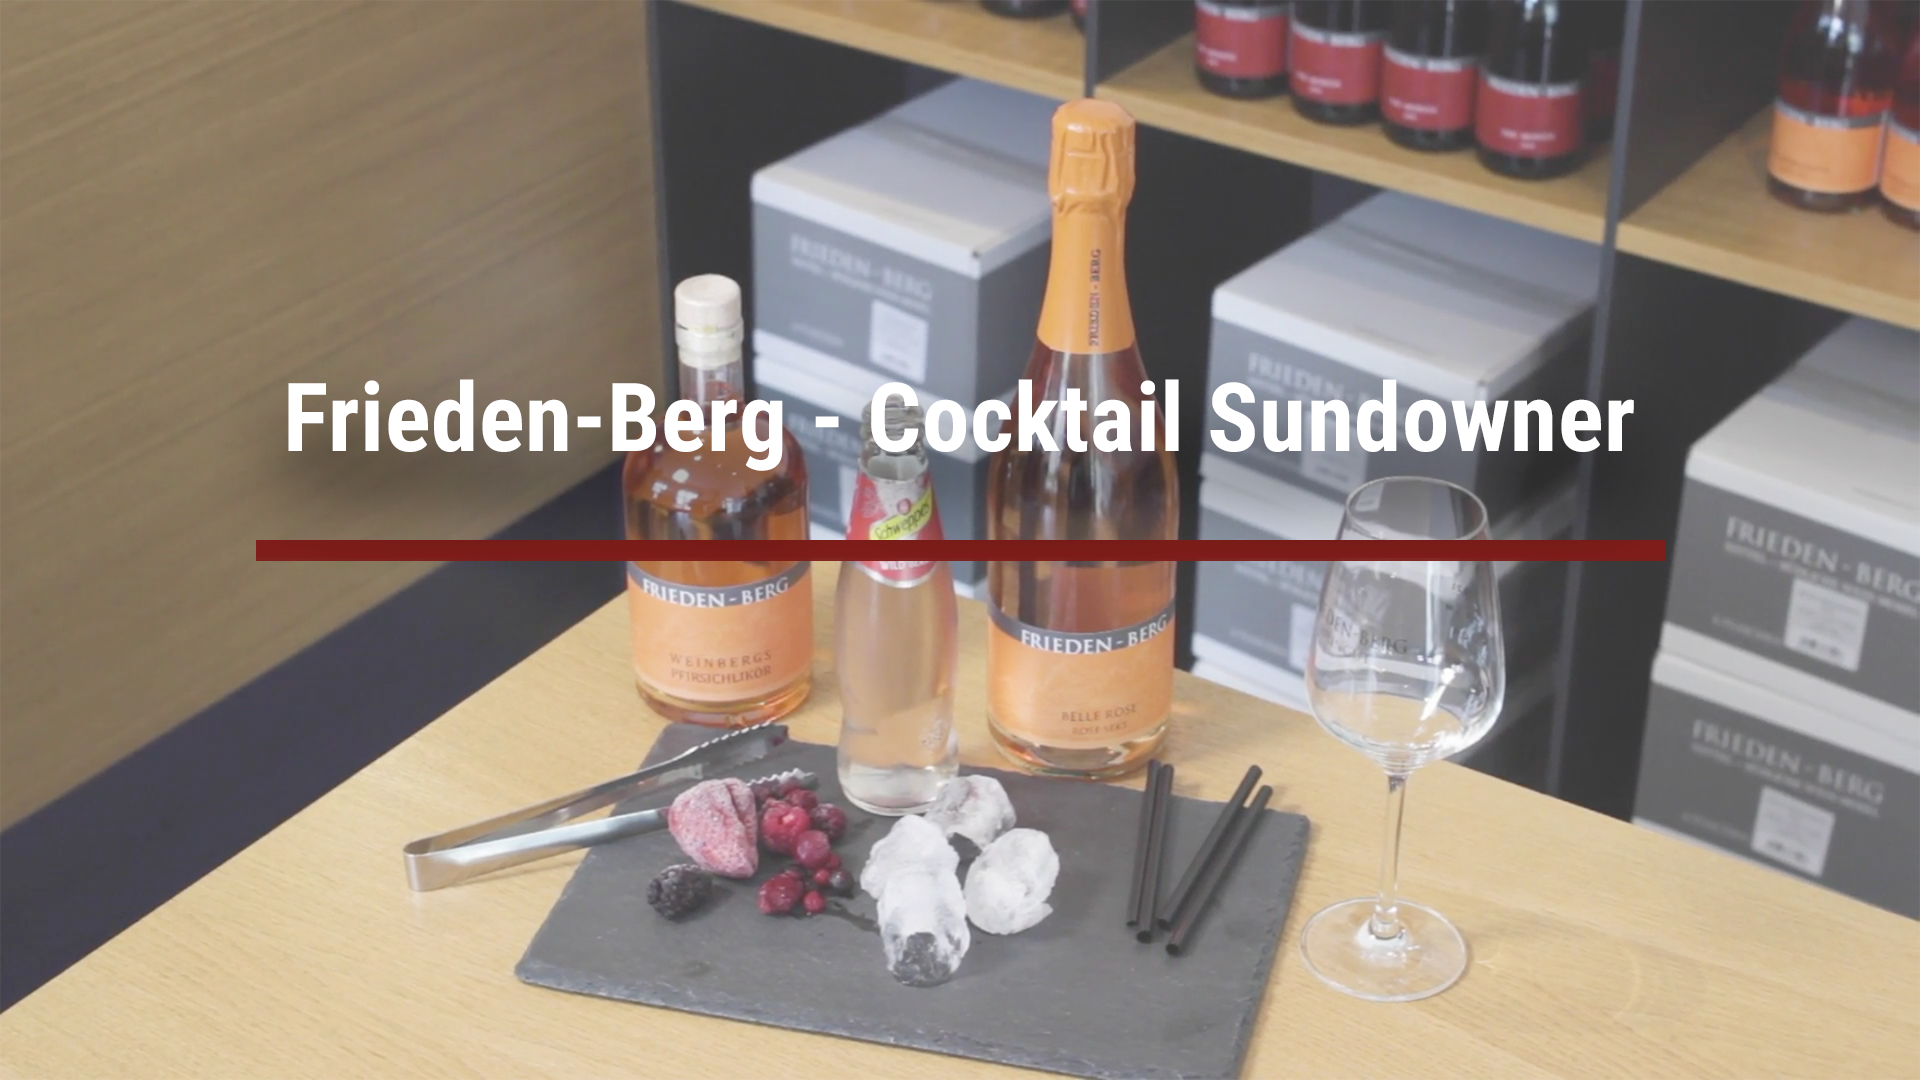 Frieden-Berg – Cocktail Sundowner